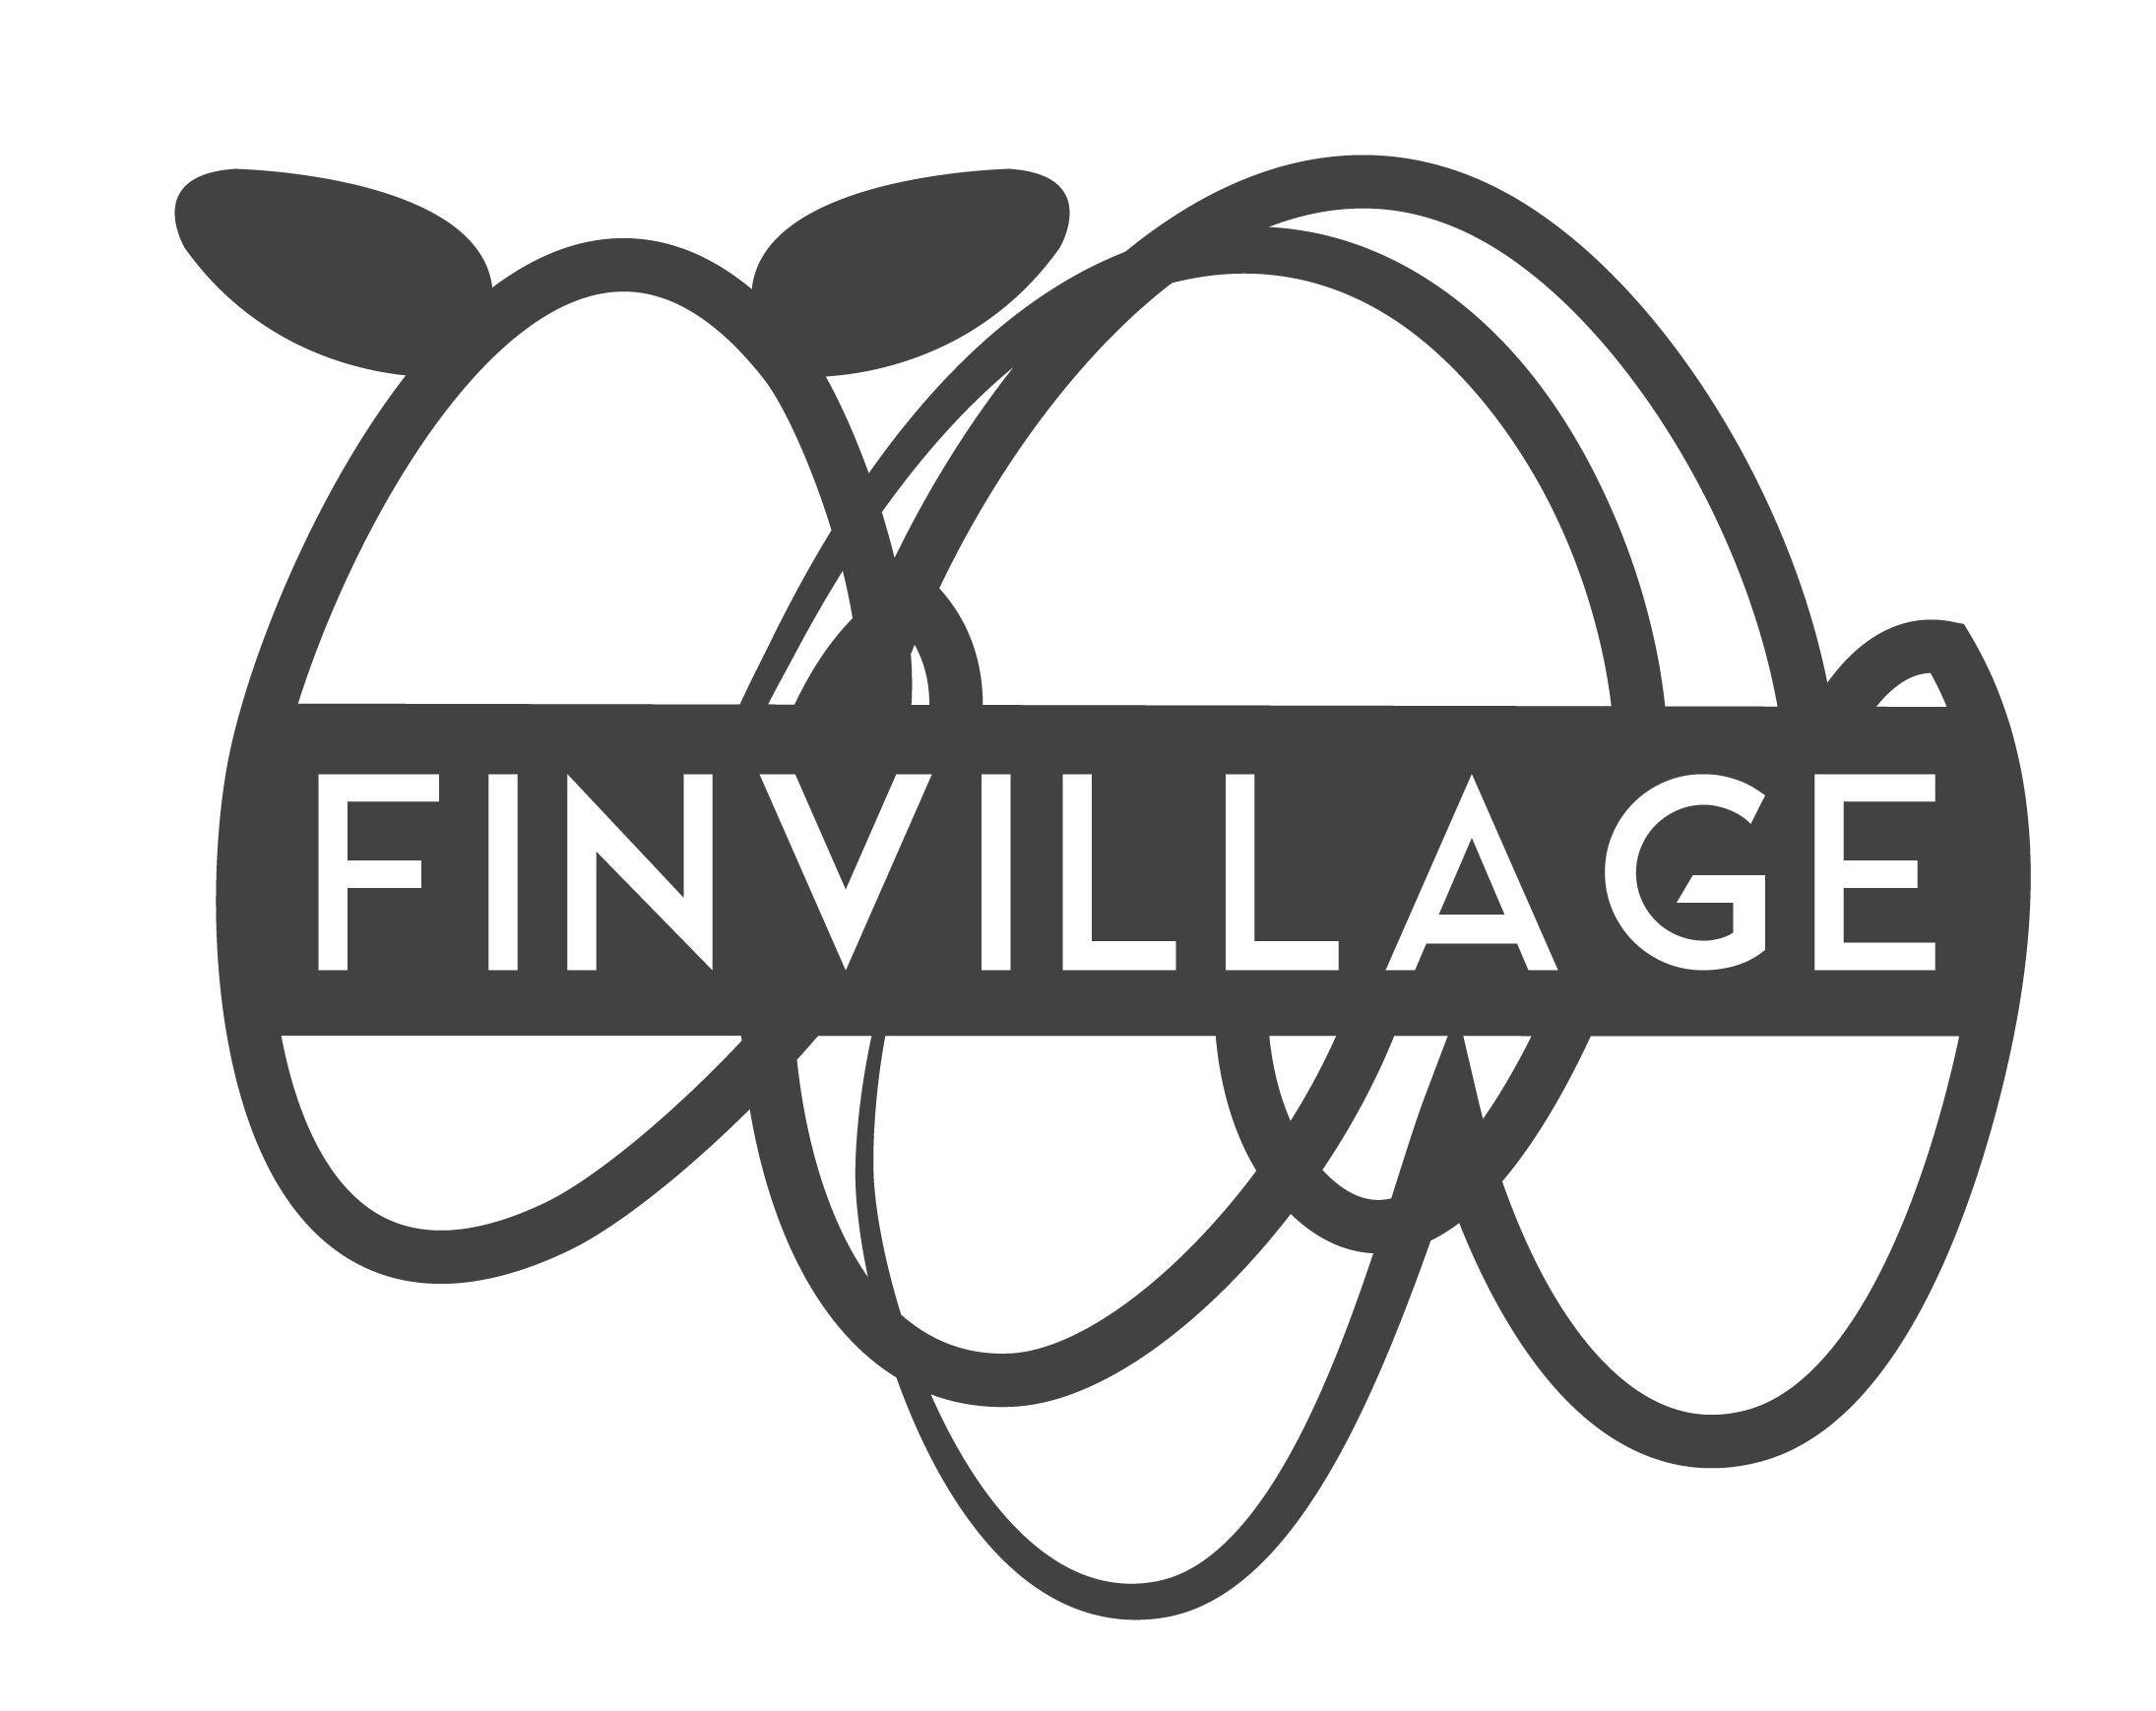 Finvillage Logo